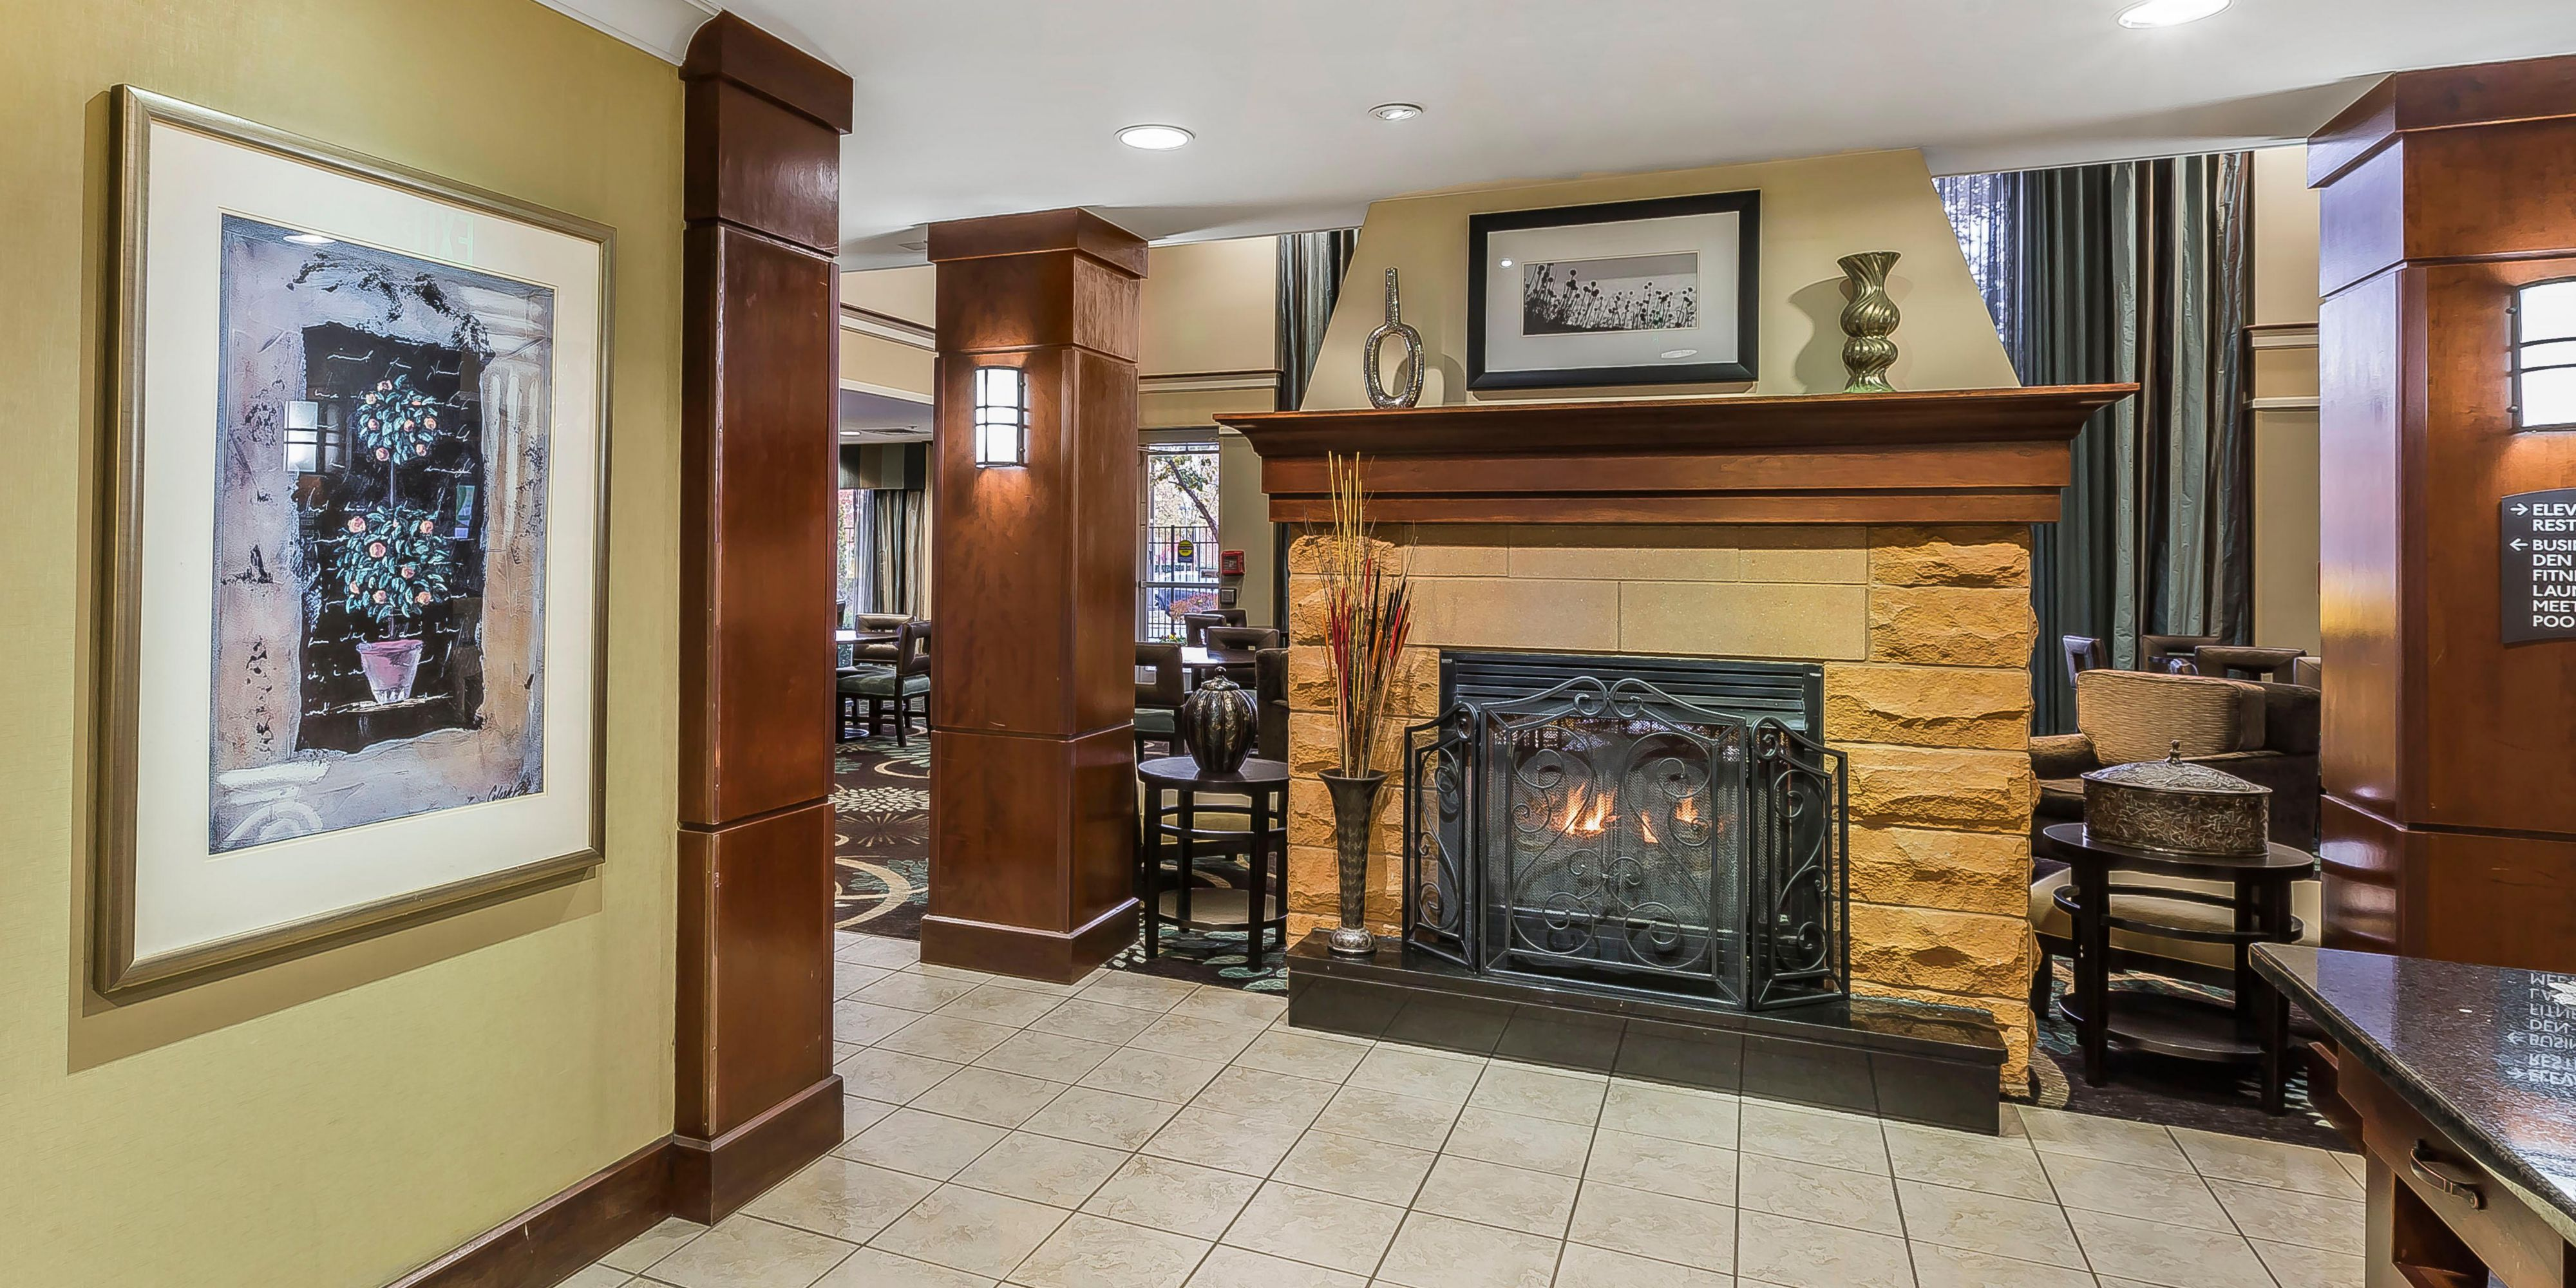 staybridge suites chattanooga dwtn conv ctnr chattanooga